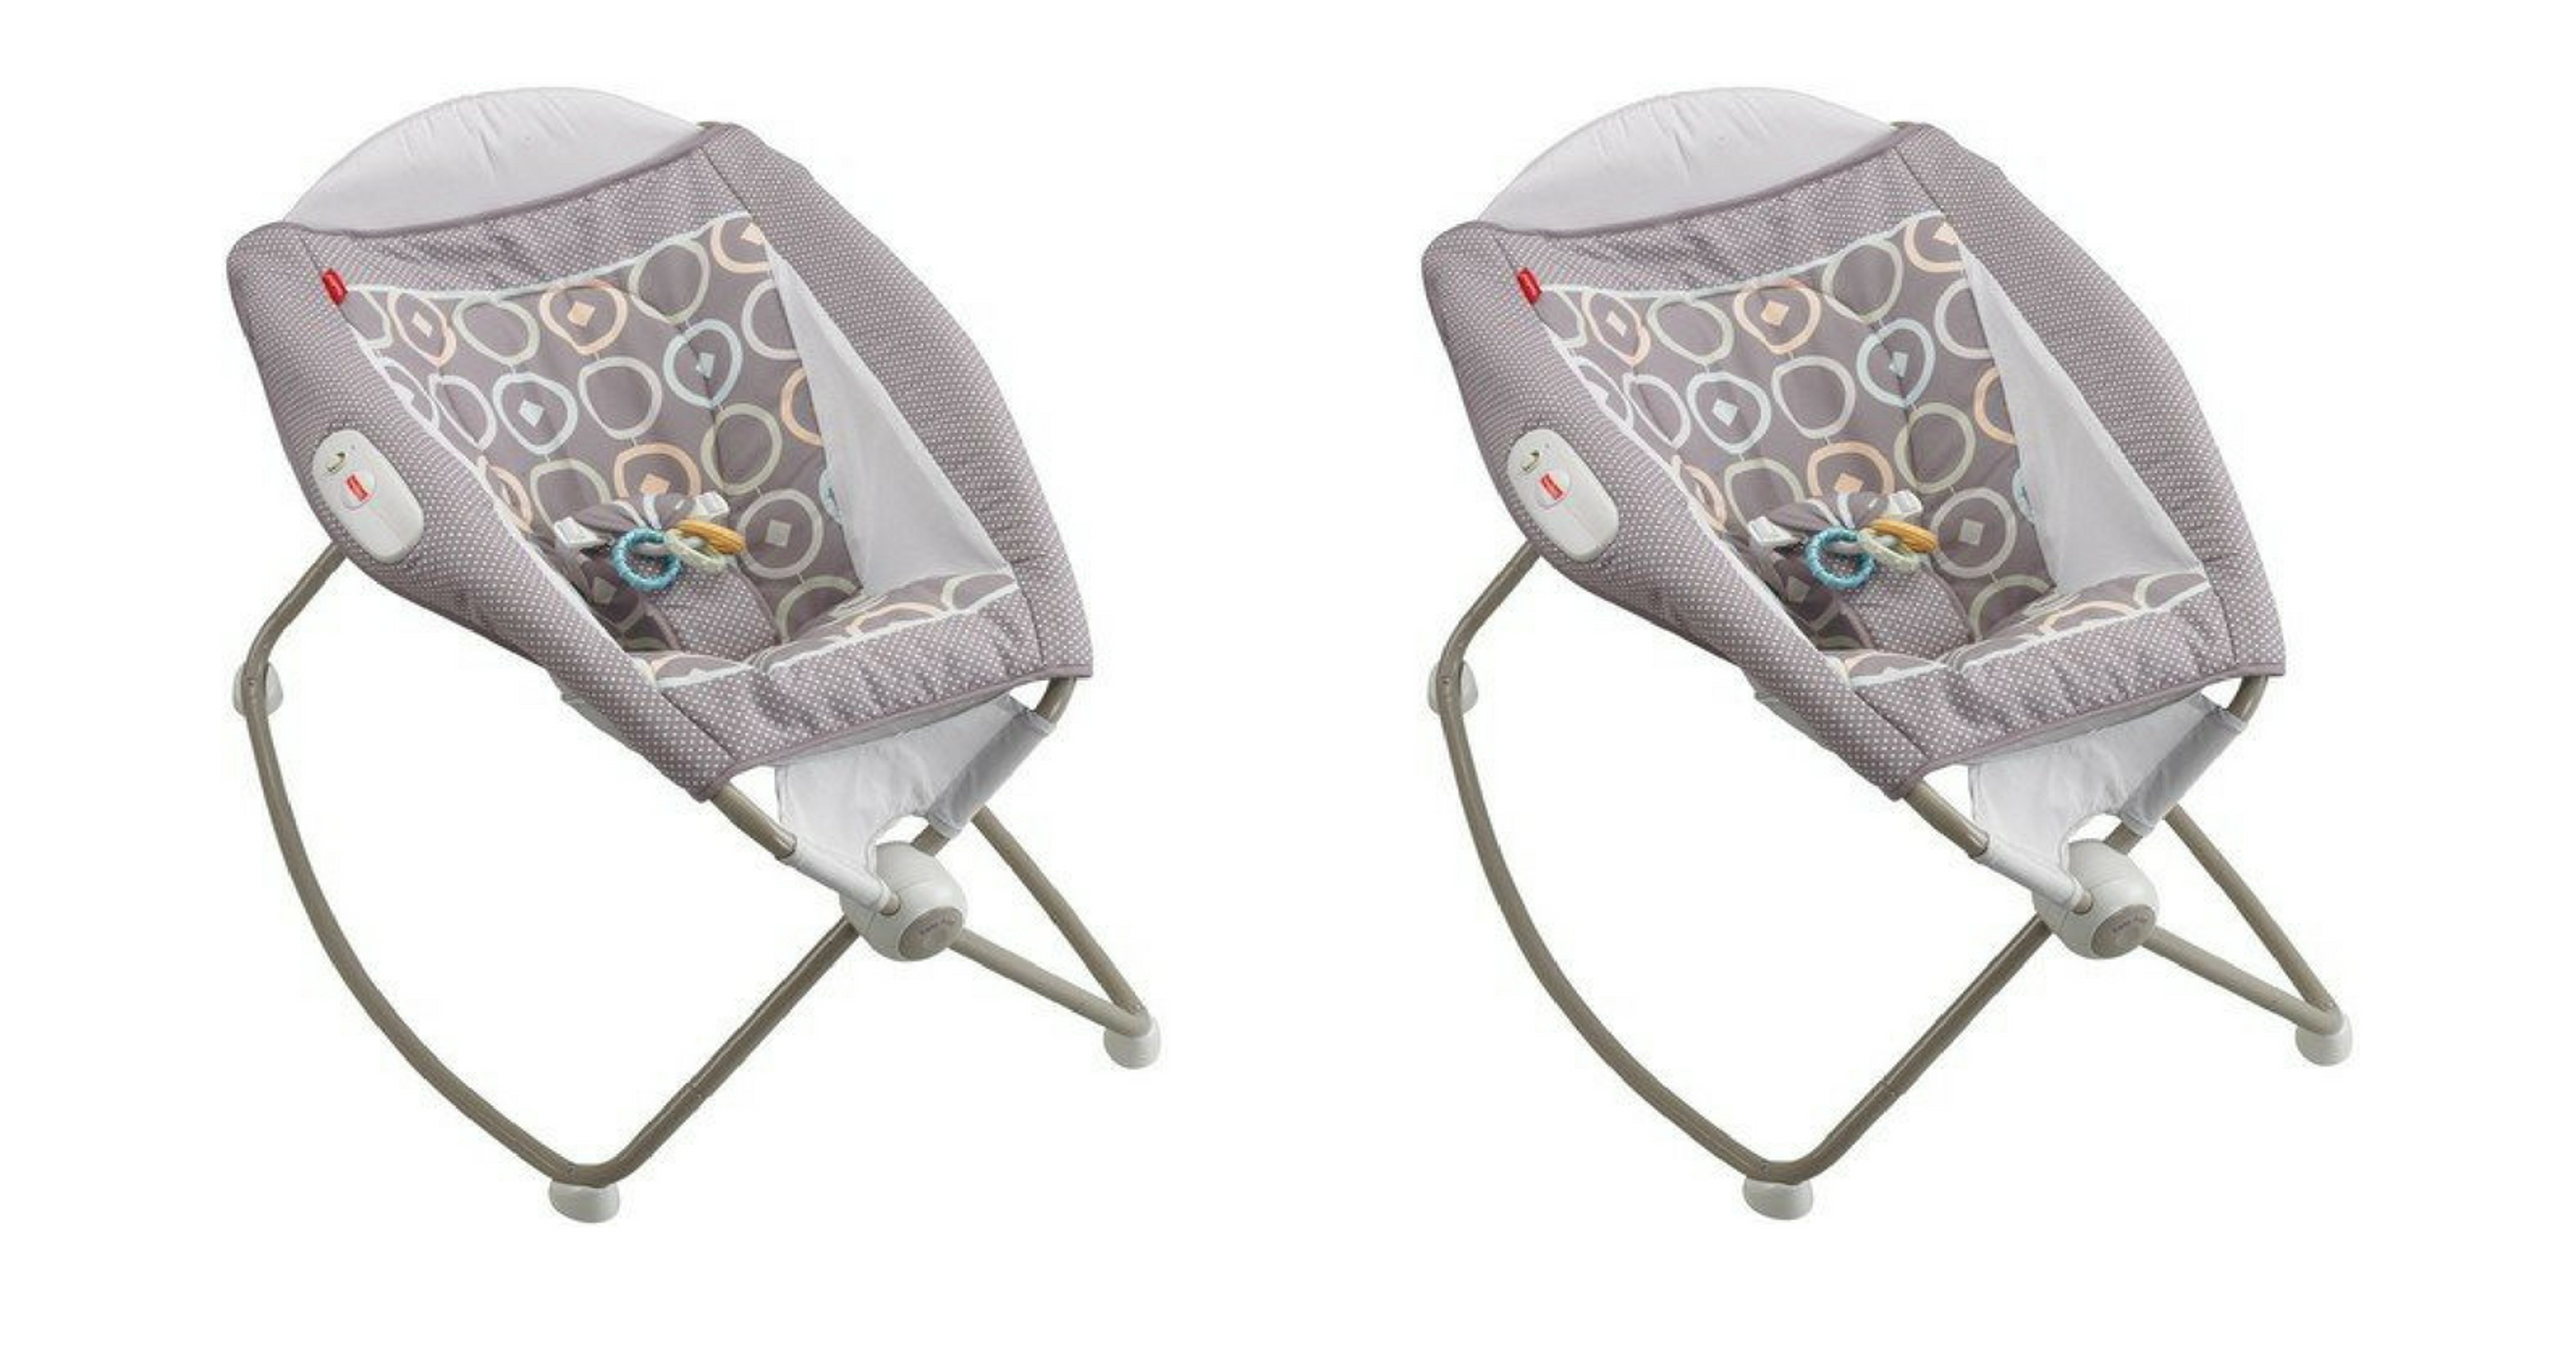 Class action lawsuits filed against Fisher-Price over Rock 'n Play infant deaths, recall - USA TODAY